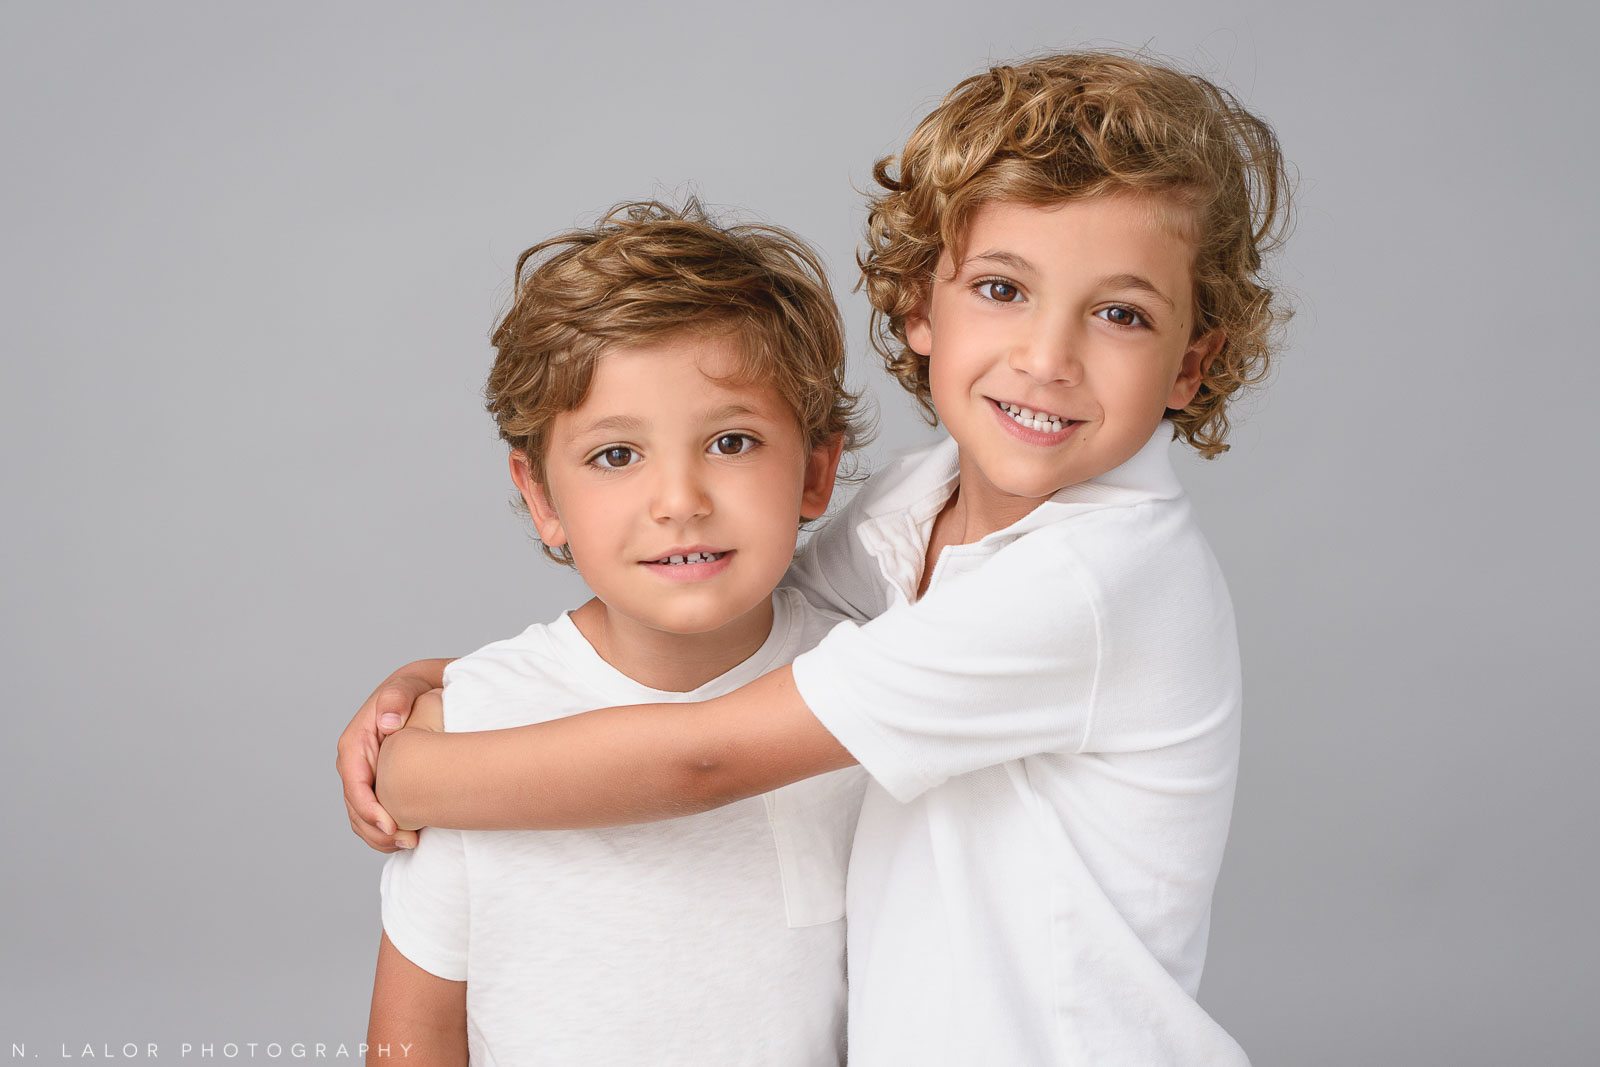 Brothers. Family photo session by N. Lalor Photography in Greenwich, CT.